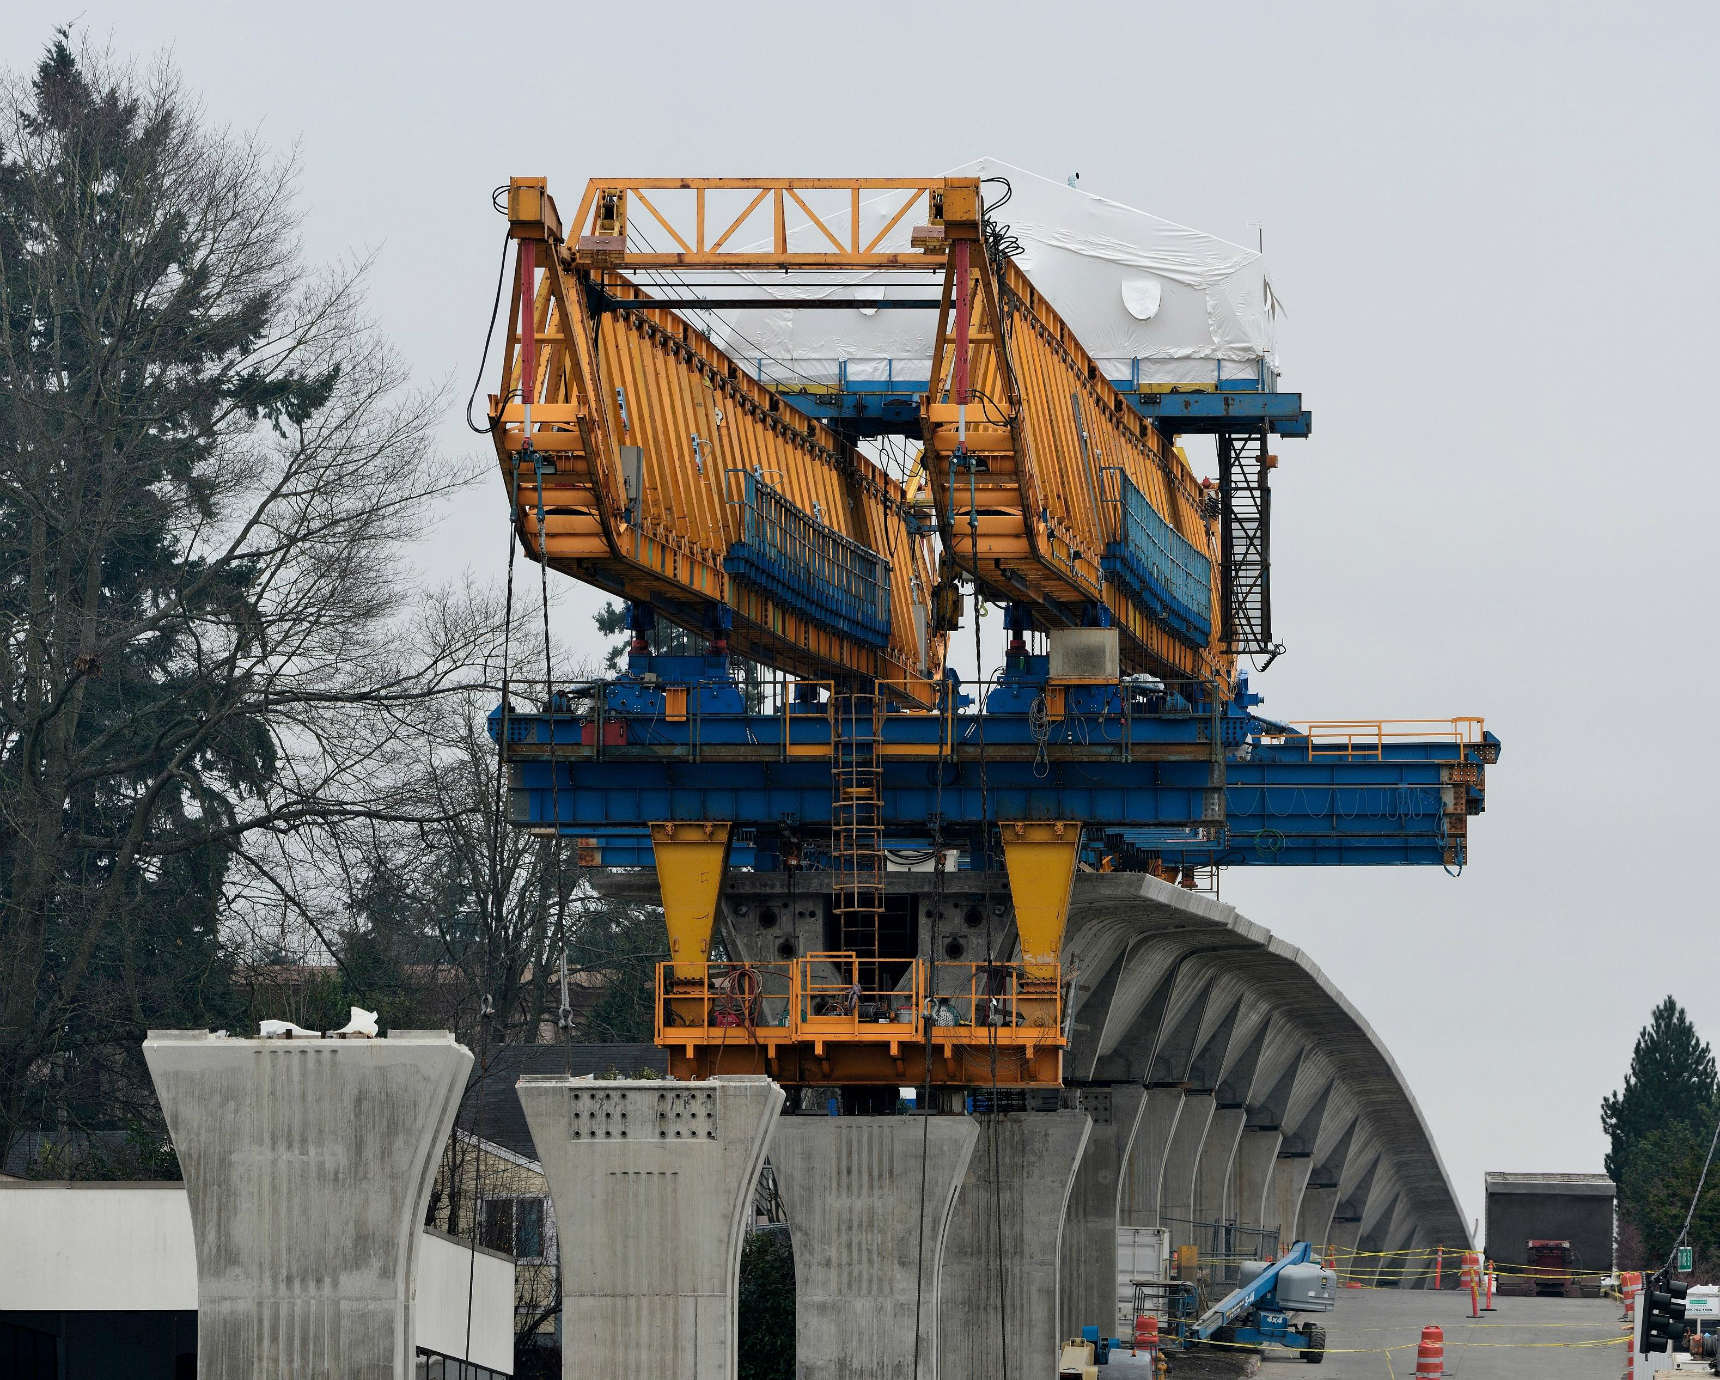 Sound Transit S. 200th Light Rail Extension Project, O ...